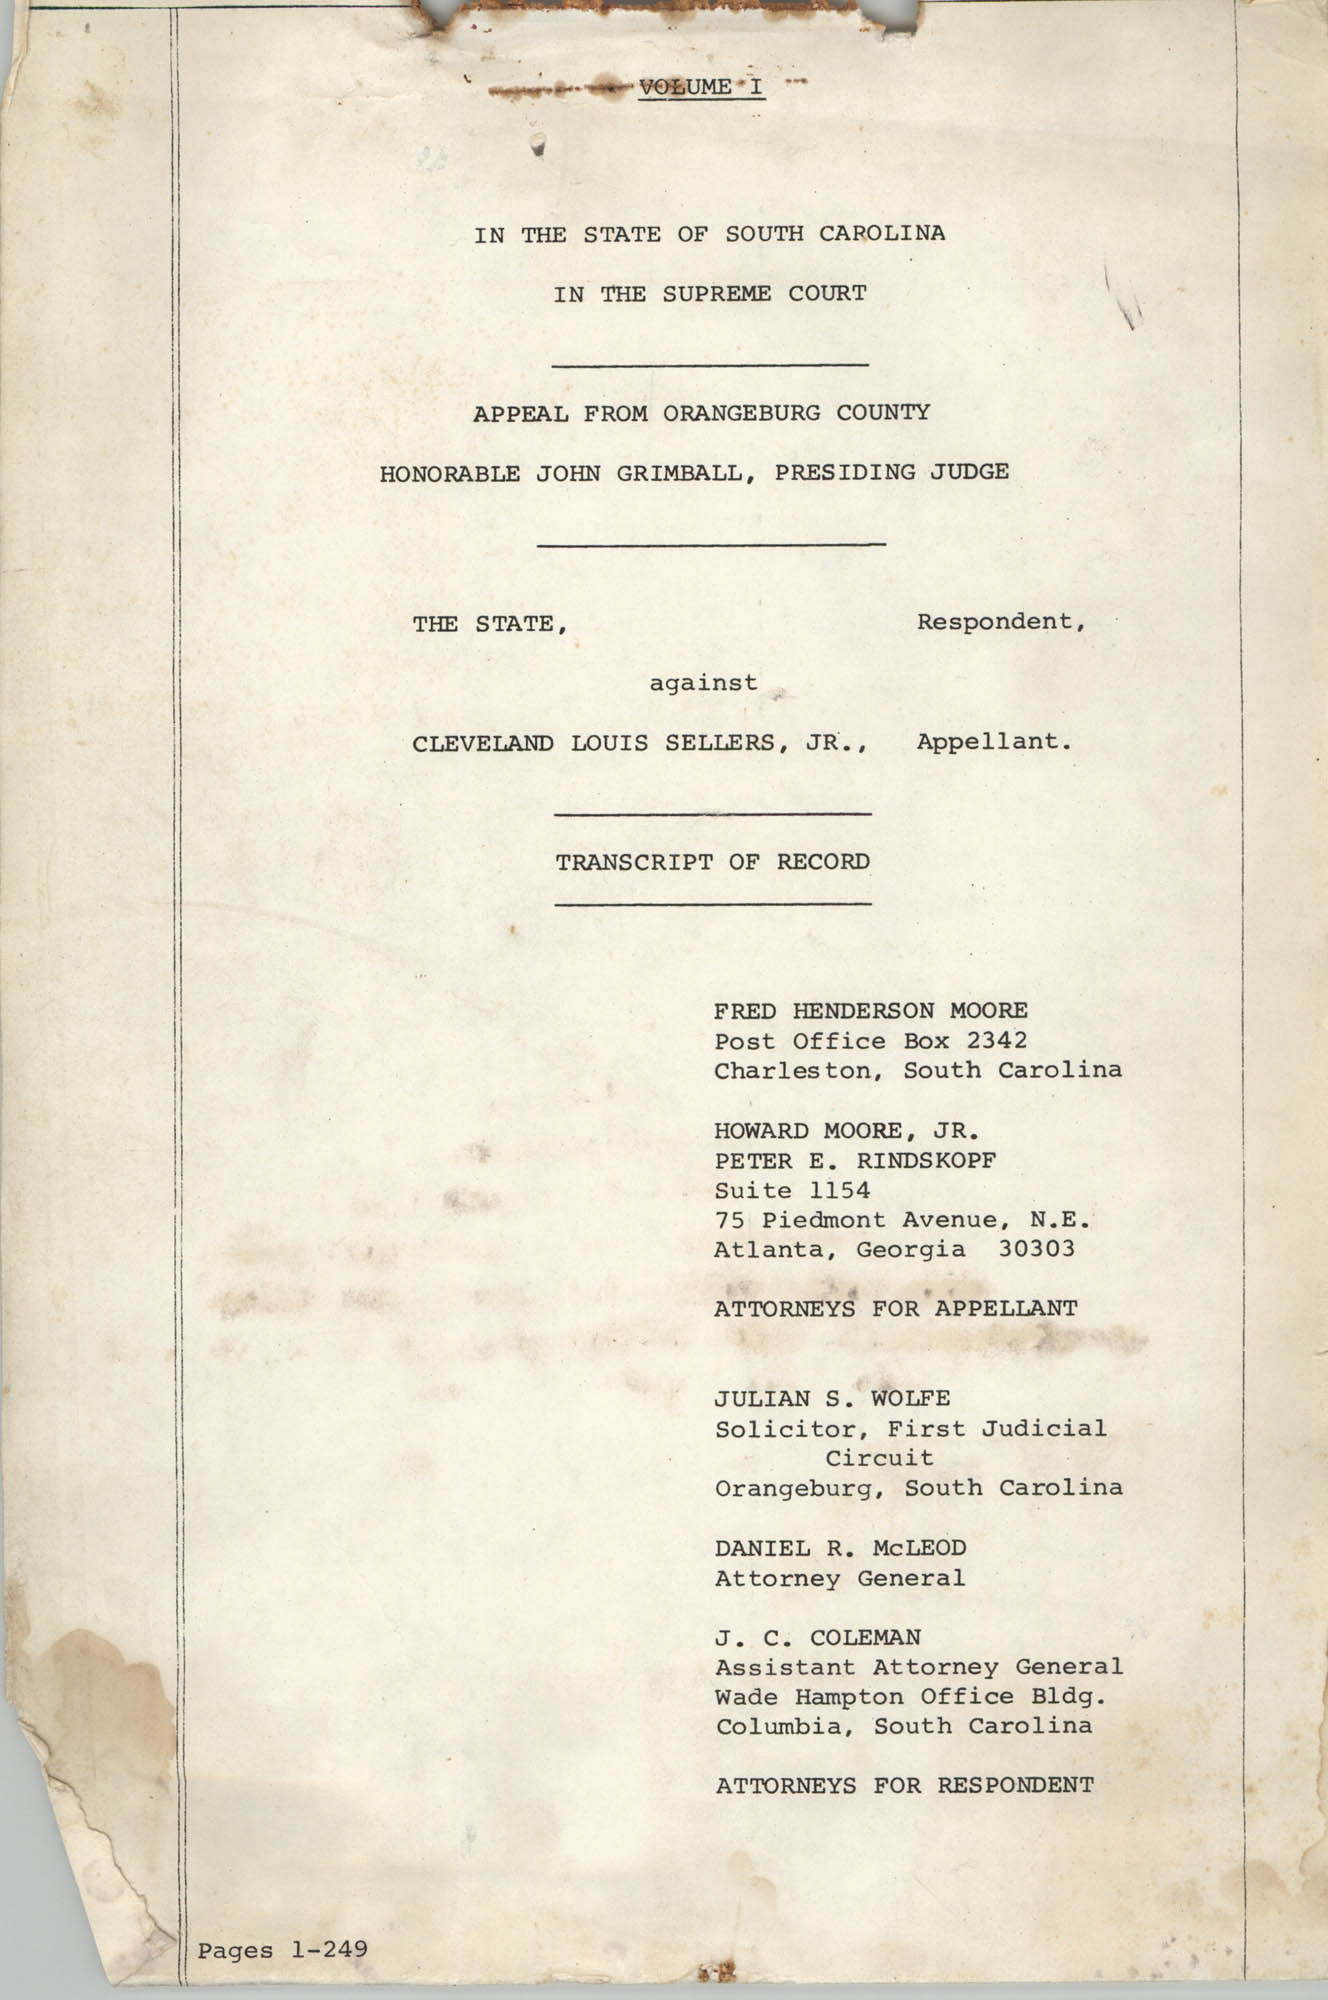 Appeal from Orangeburg County, The State against Cleveland Louis Sellers, Jr., Volume I, Cover